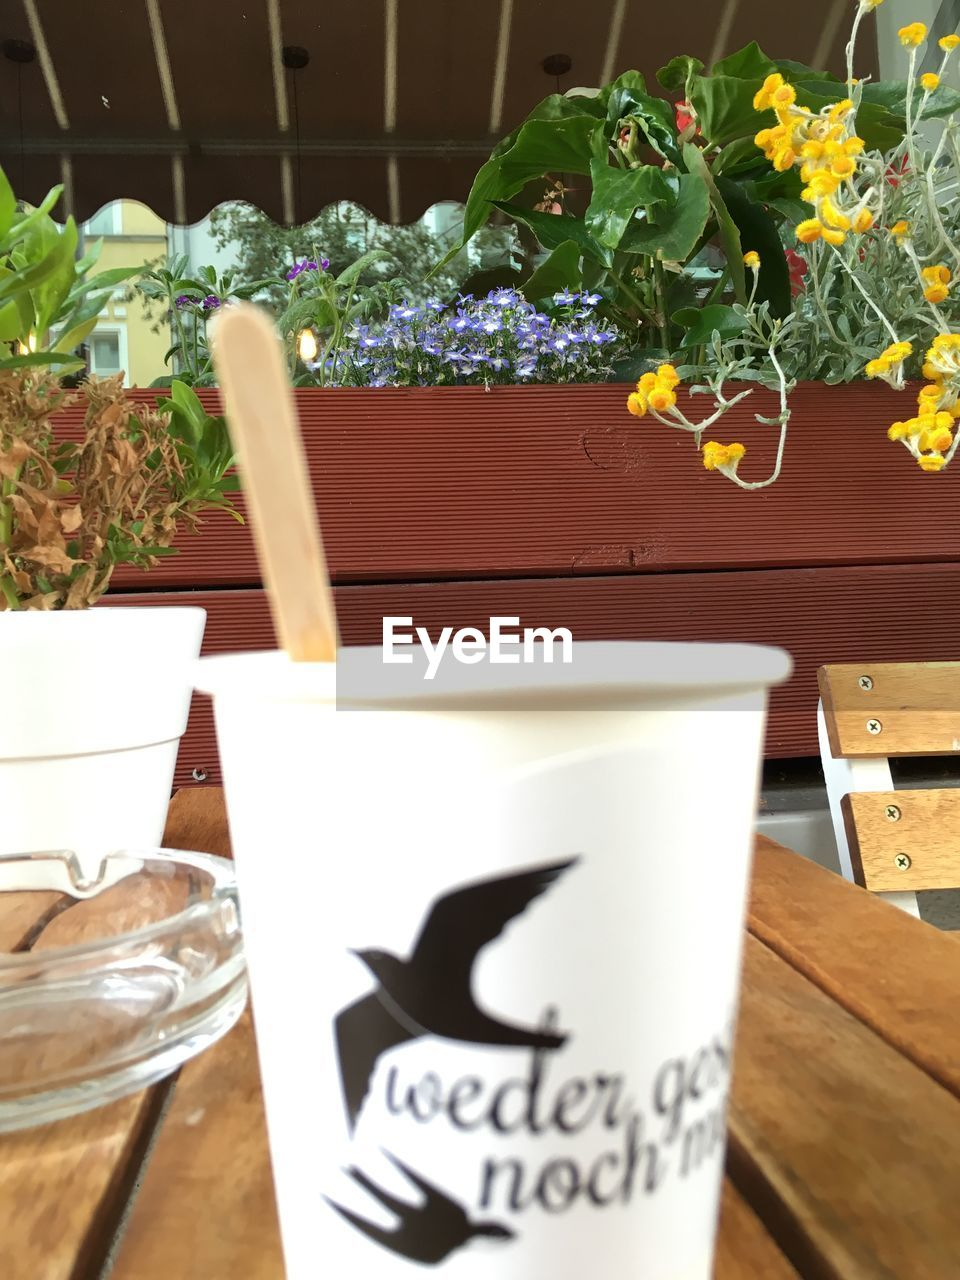 plant, potted plant, freshness, food and drink, nature, table, growth, no people, refreshment, drink, close-up, indoors, text, communication, cup, leaf, plant part, flower, wood - material, glass, flower pot